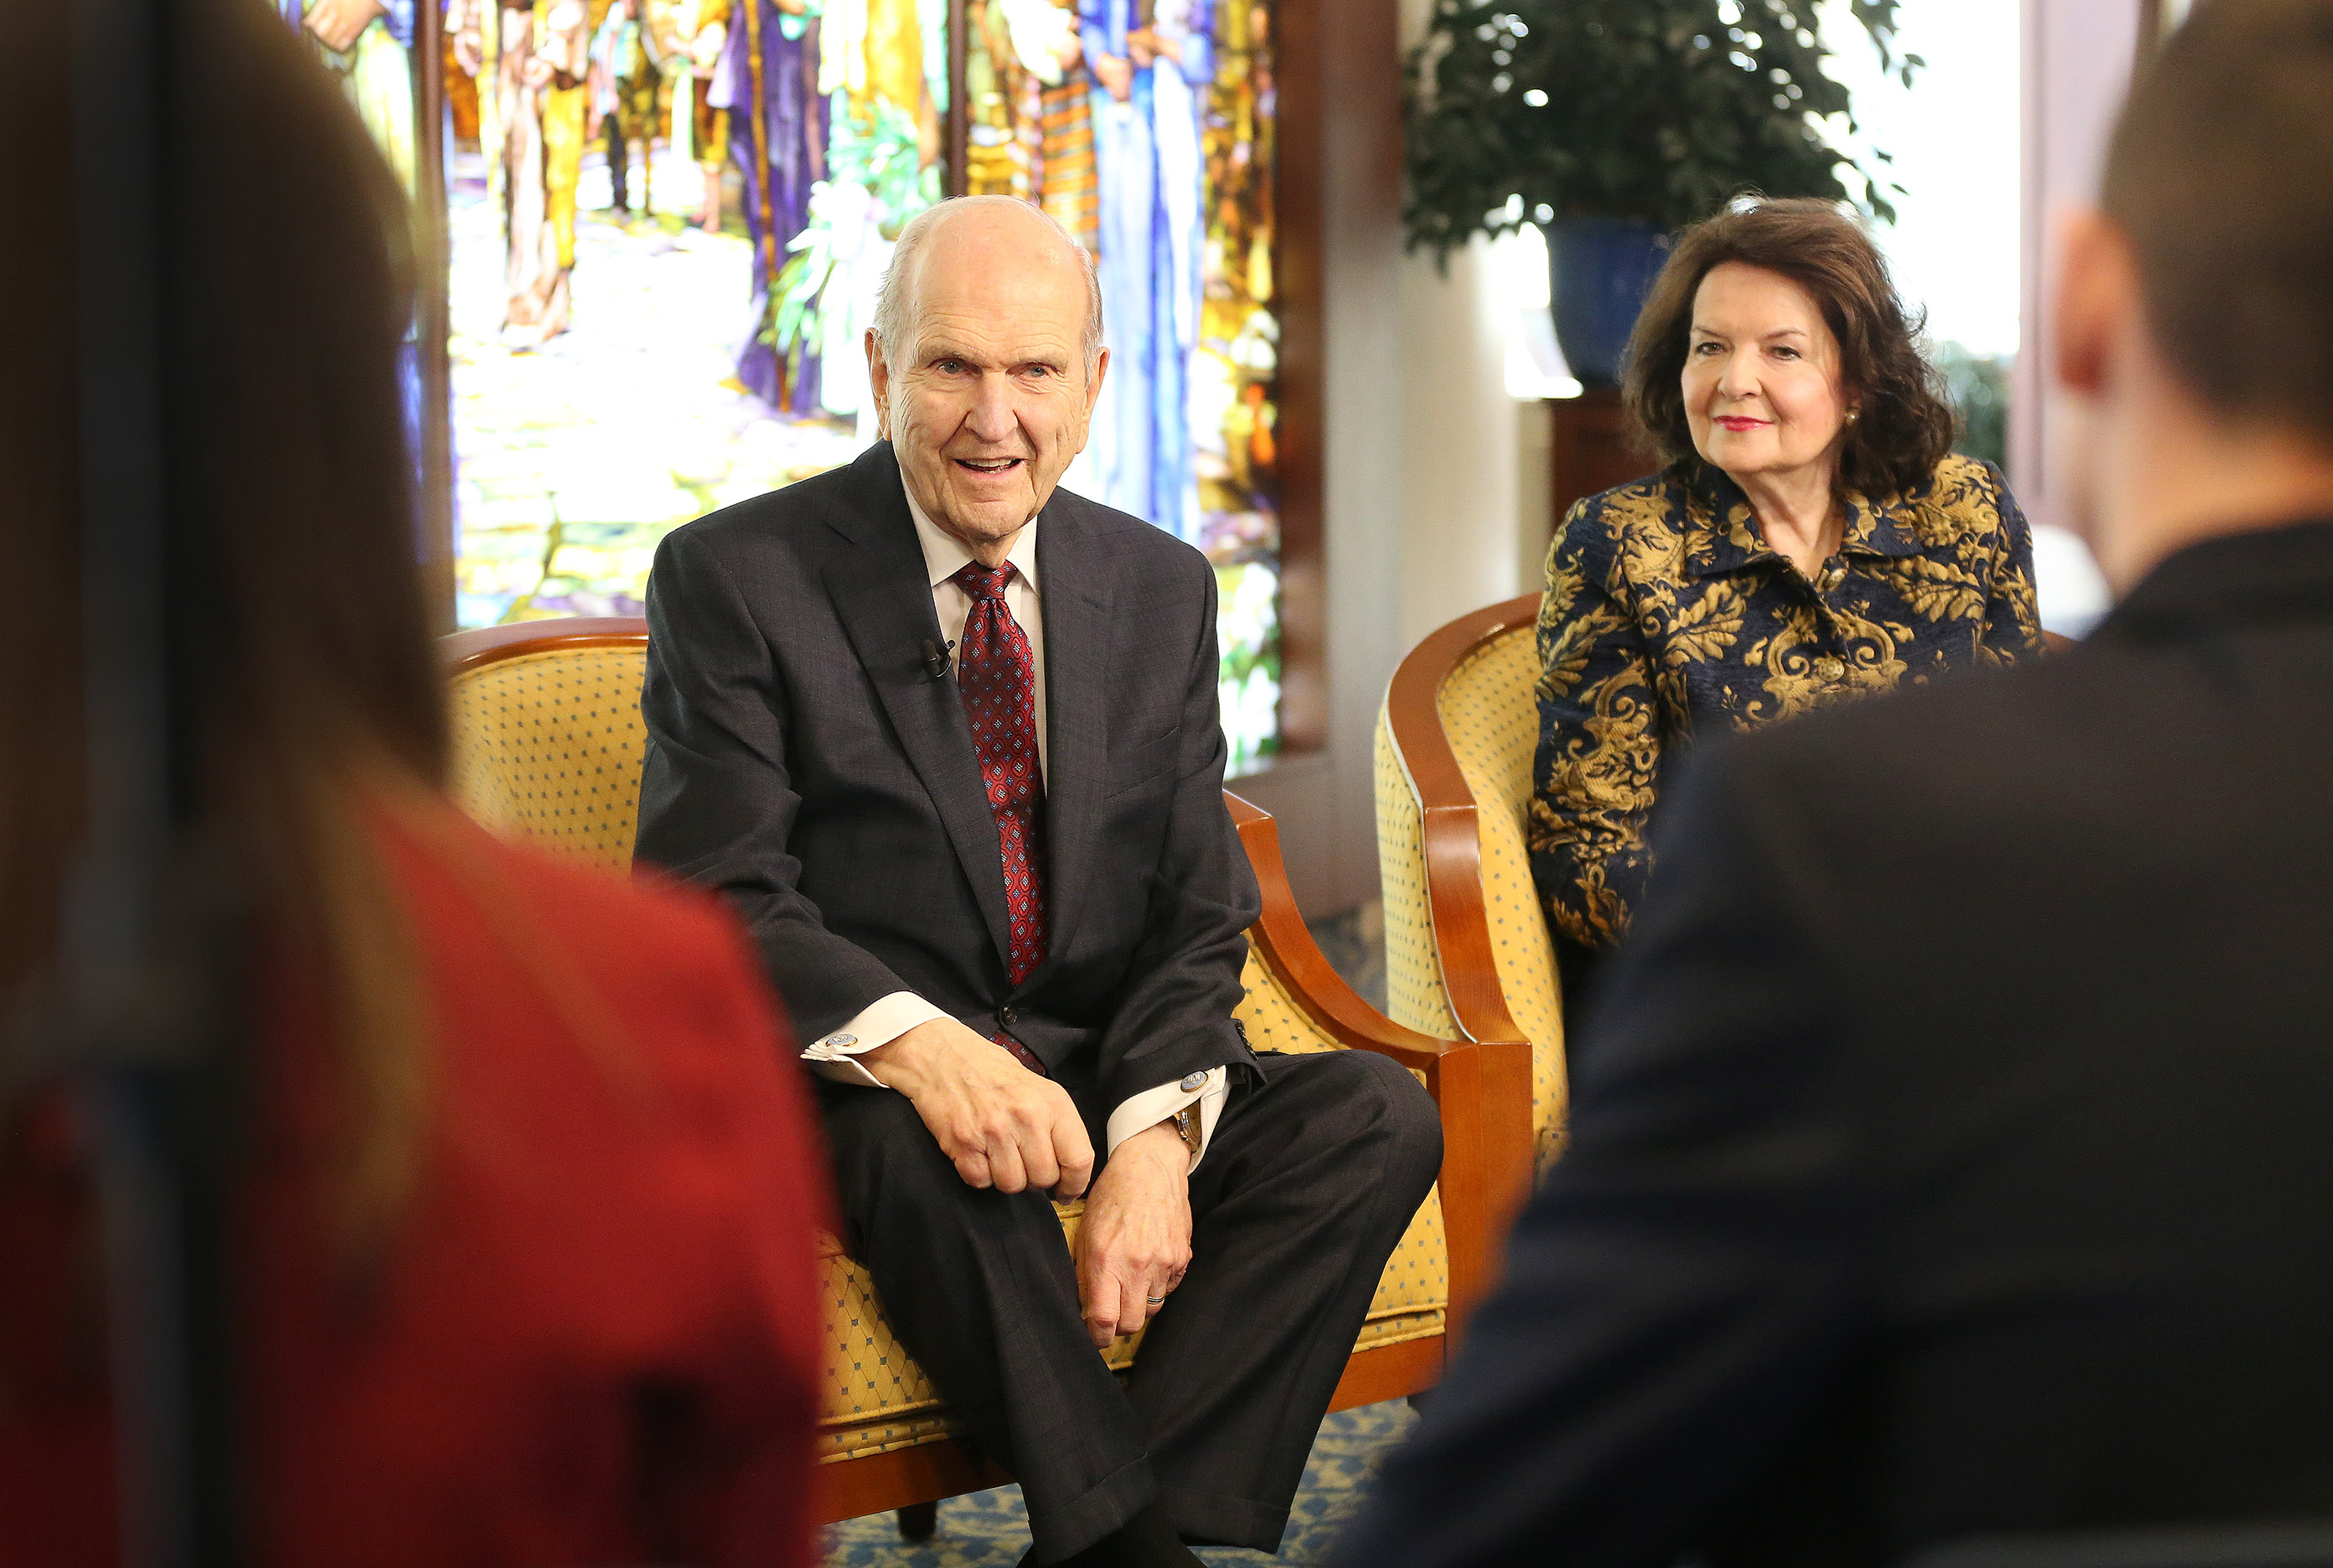 President Russell M. Nelson of The Church of Jesus Christ of Latter-day Saints and how wife Sister Wendy Nelson meet with youth in Rome, Italy on Saturday, March 9, 2019.